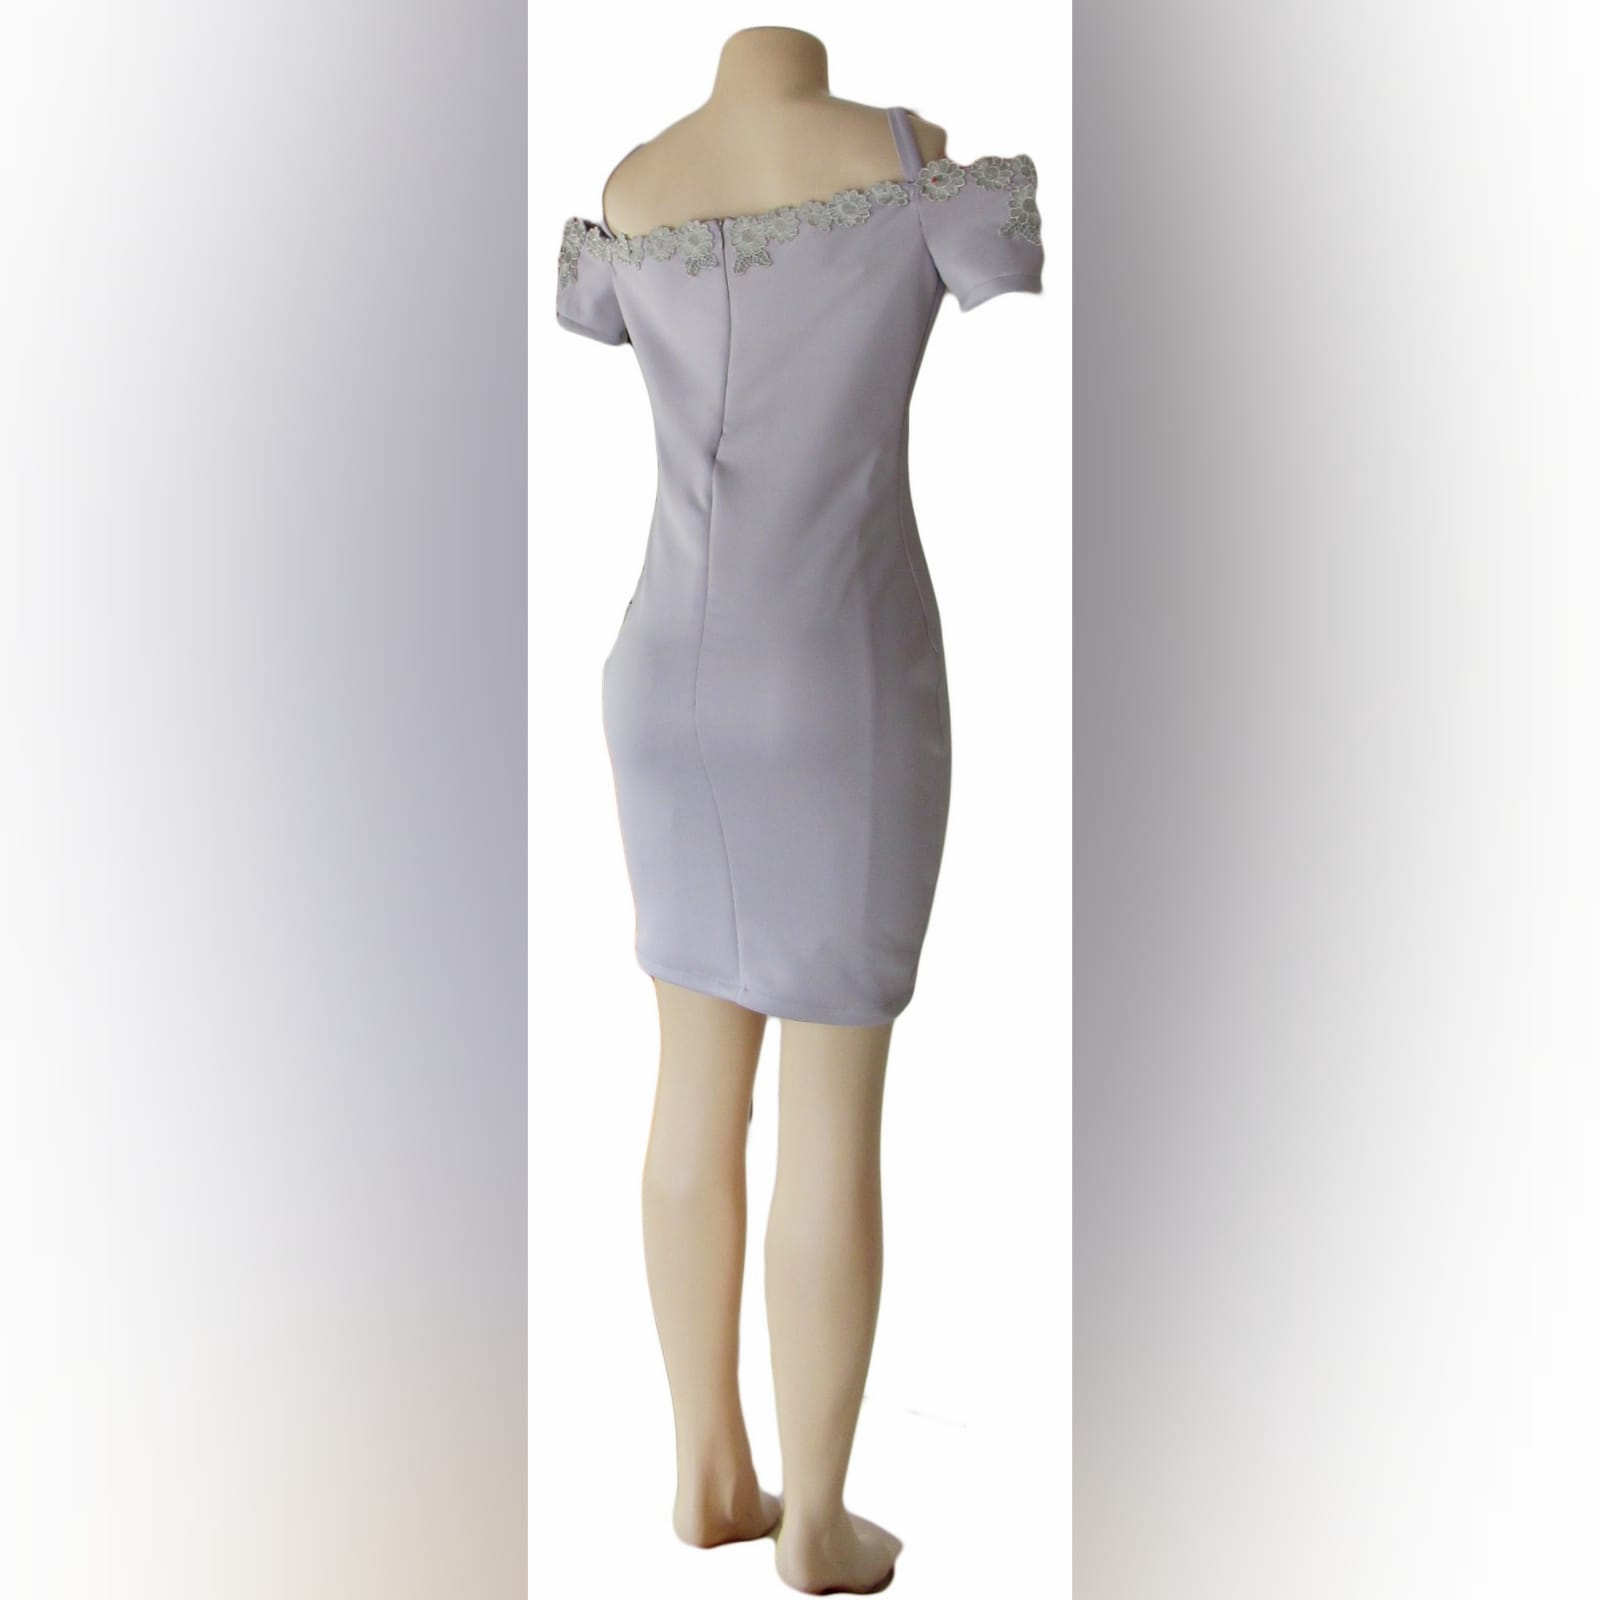 Light grey short fitted smart casual dress 6 light grey short fitted smart casual dress, with off shoulder shorter sleeves and shoulder straps. Neckline detailed with silver lace.